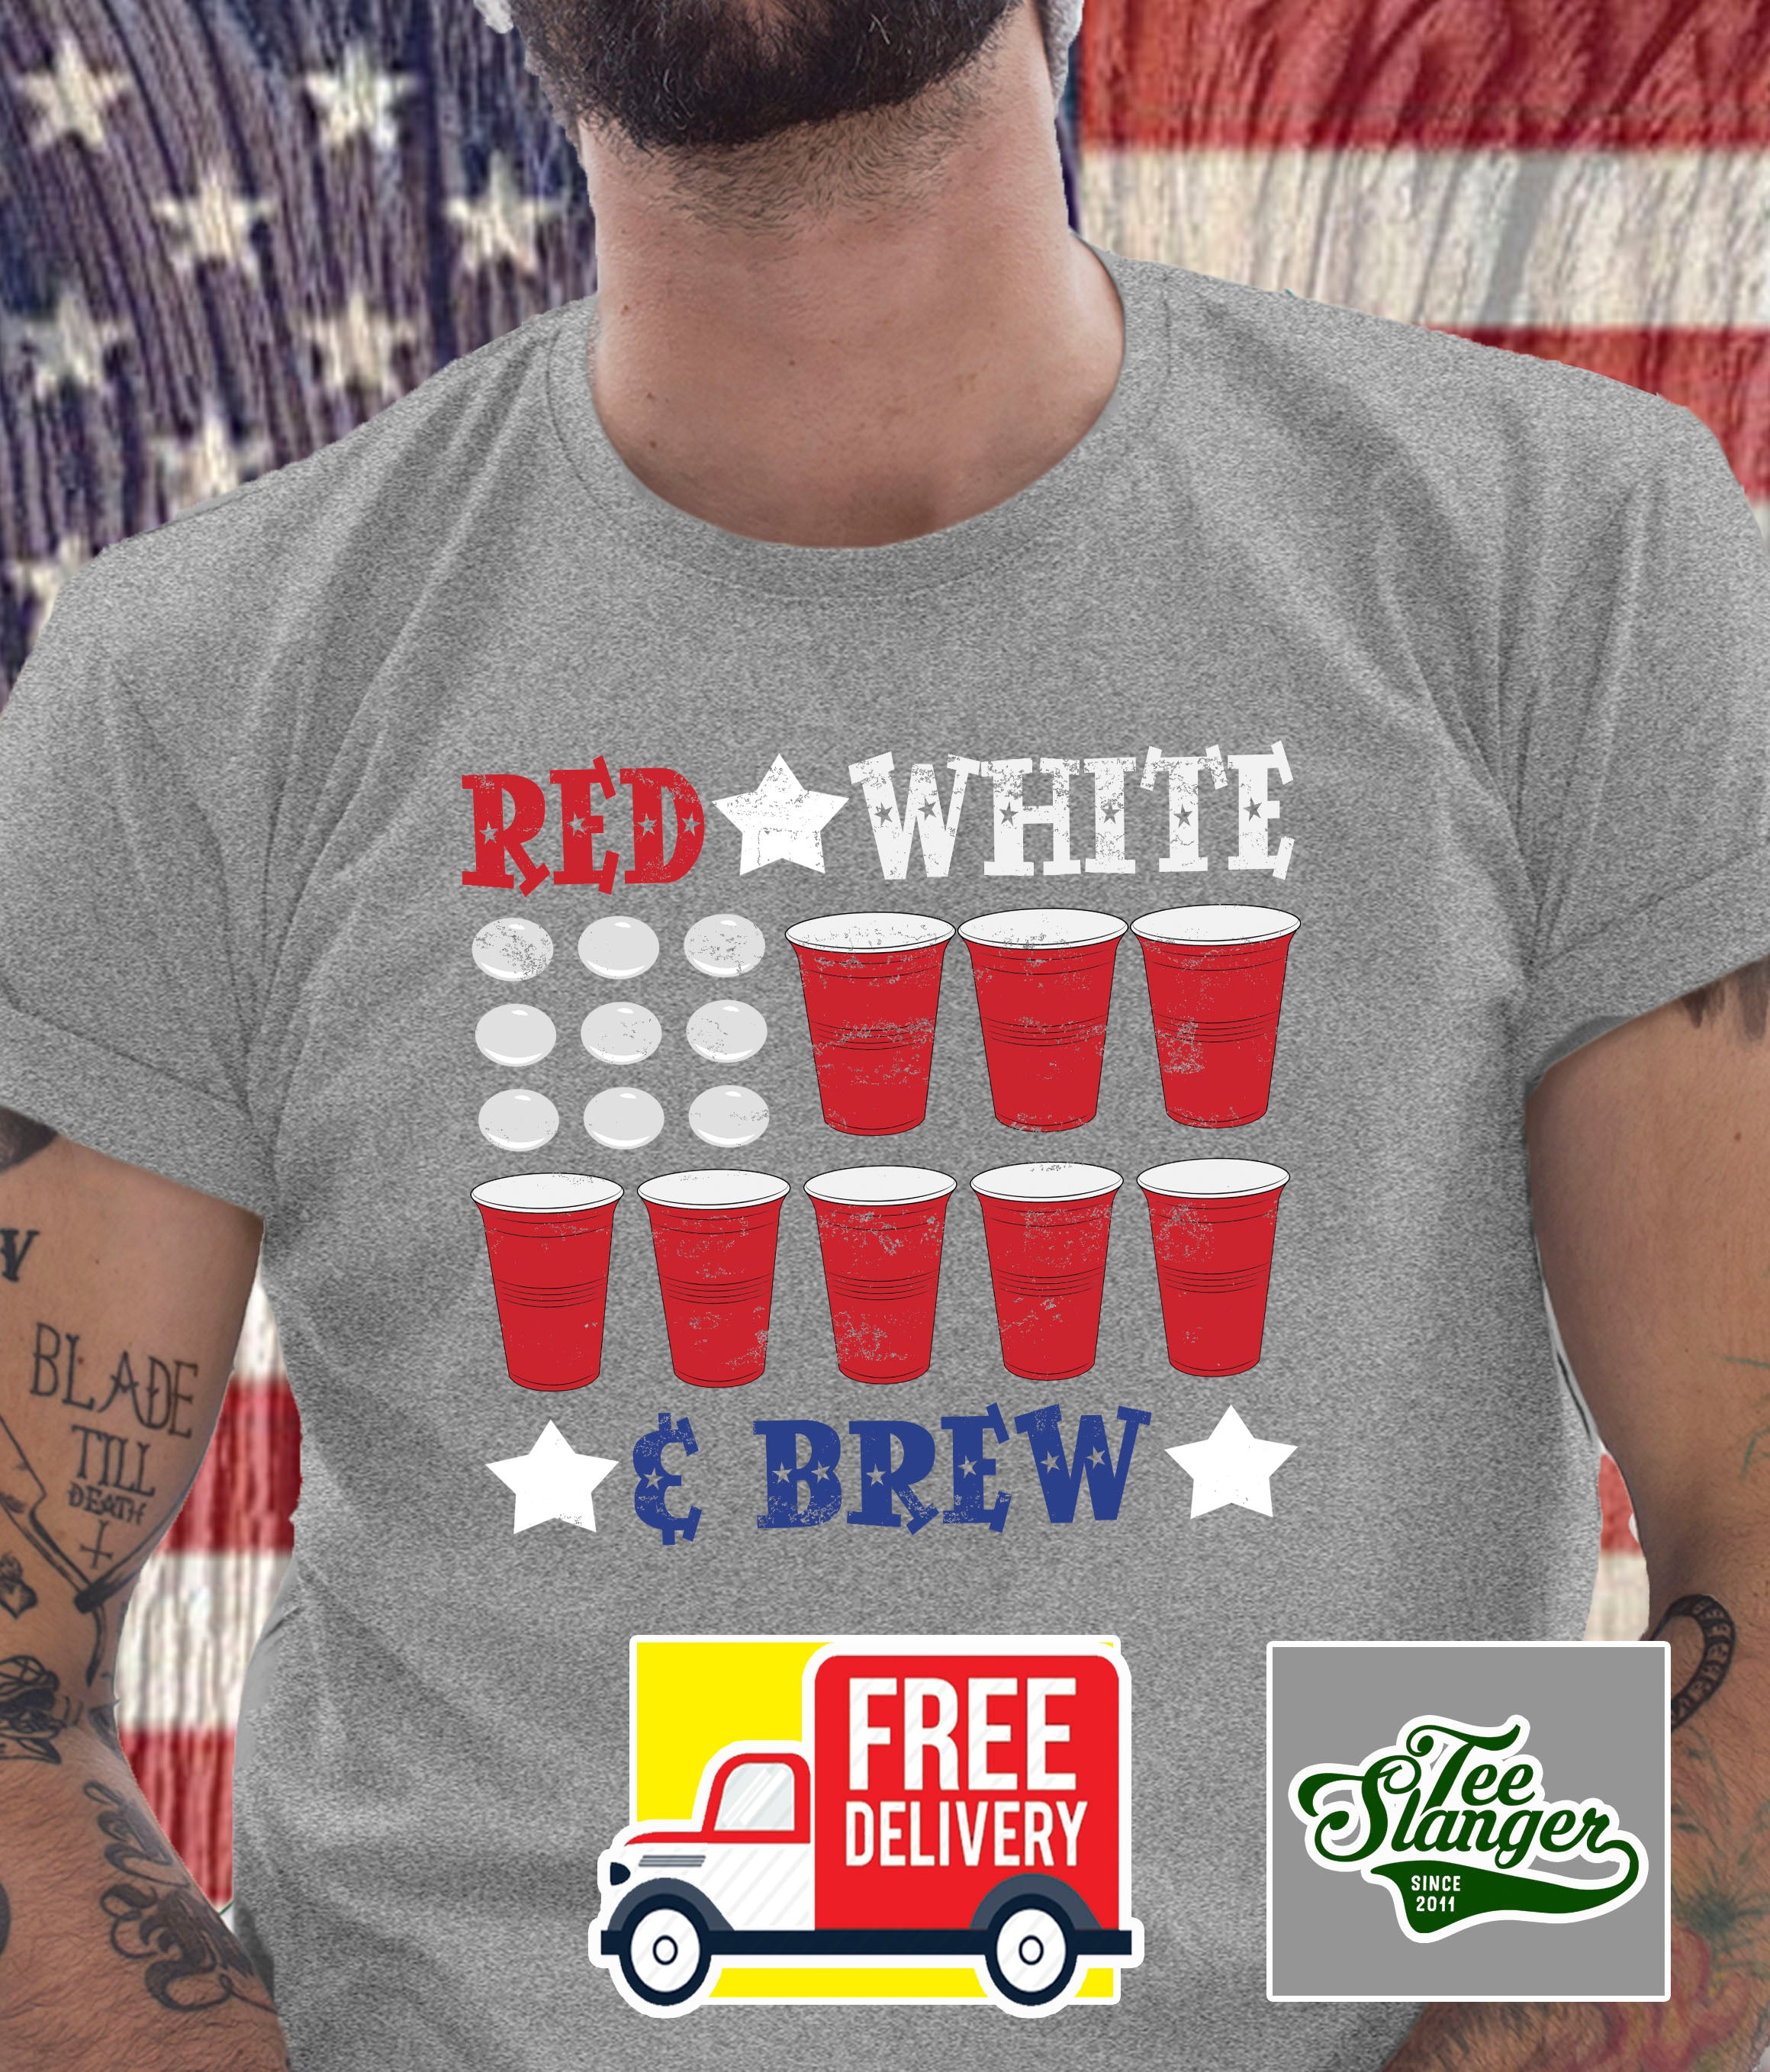 RED WHITE AND BREW T-SHIRT ON MODEL